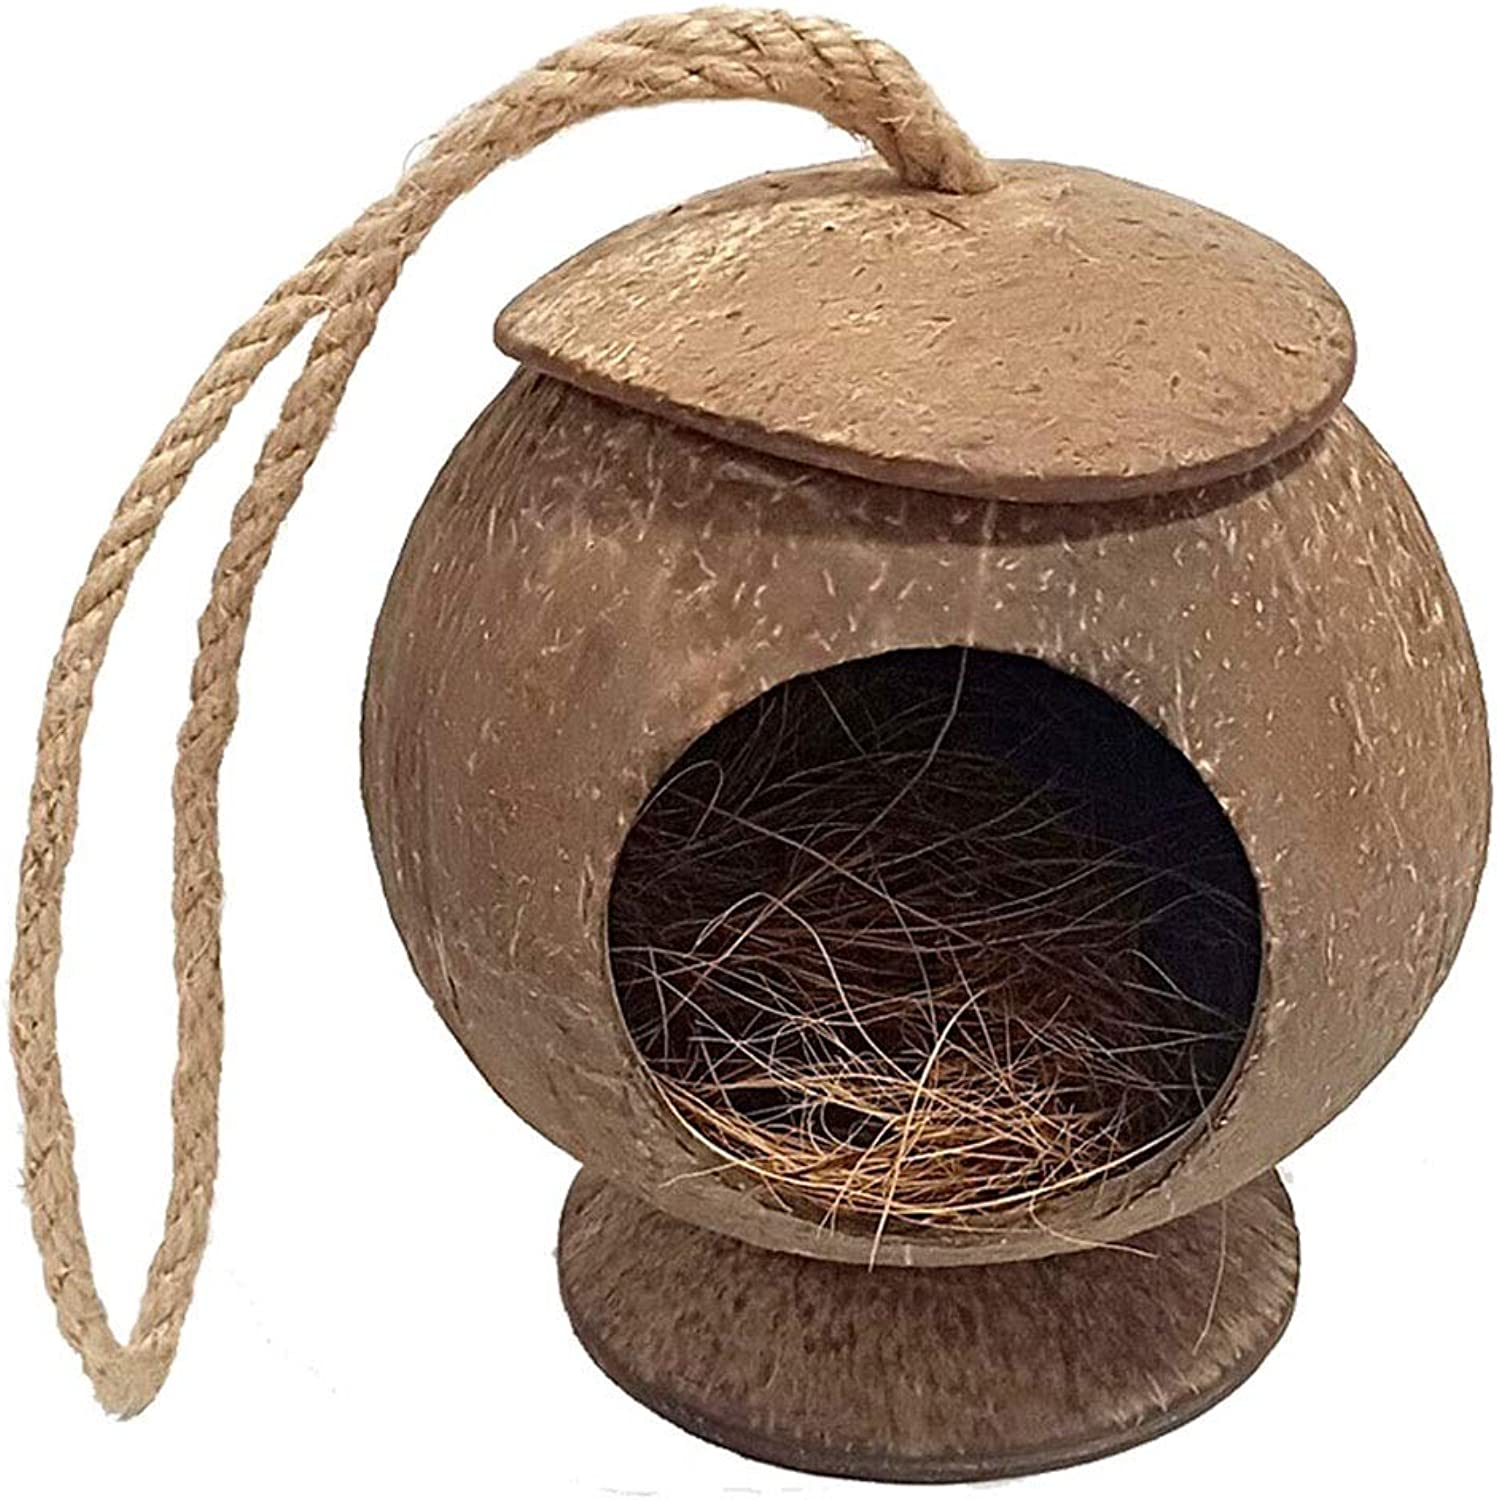 Bird Cage Natural Coconut Shell Bird Outdoor Landscaping Ornament Bird Nest 5 Styles Can Choose Round Bird Cage Birdcage (Size   C)